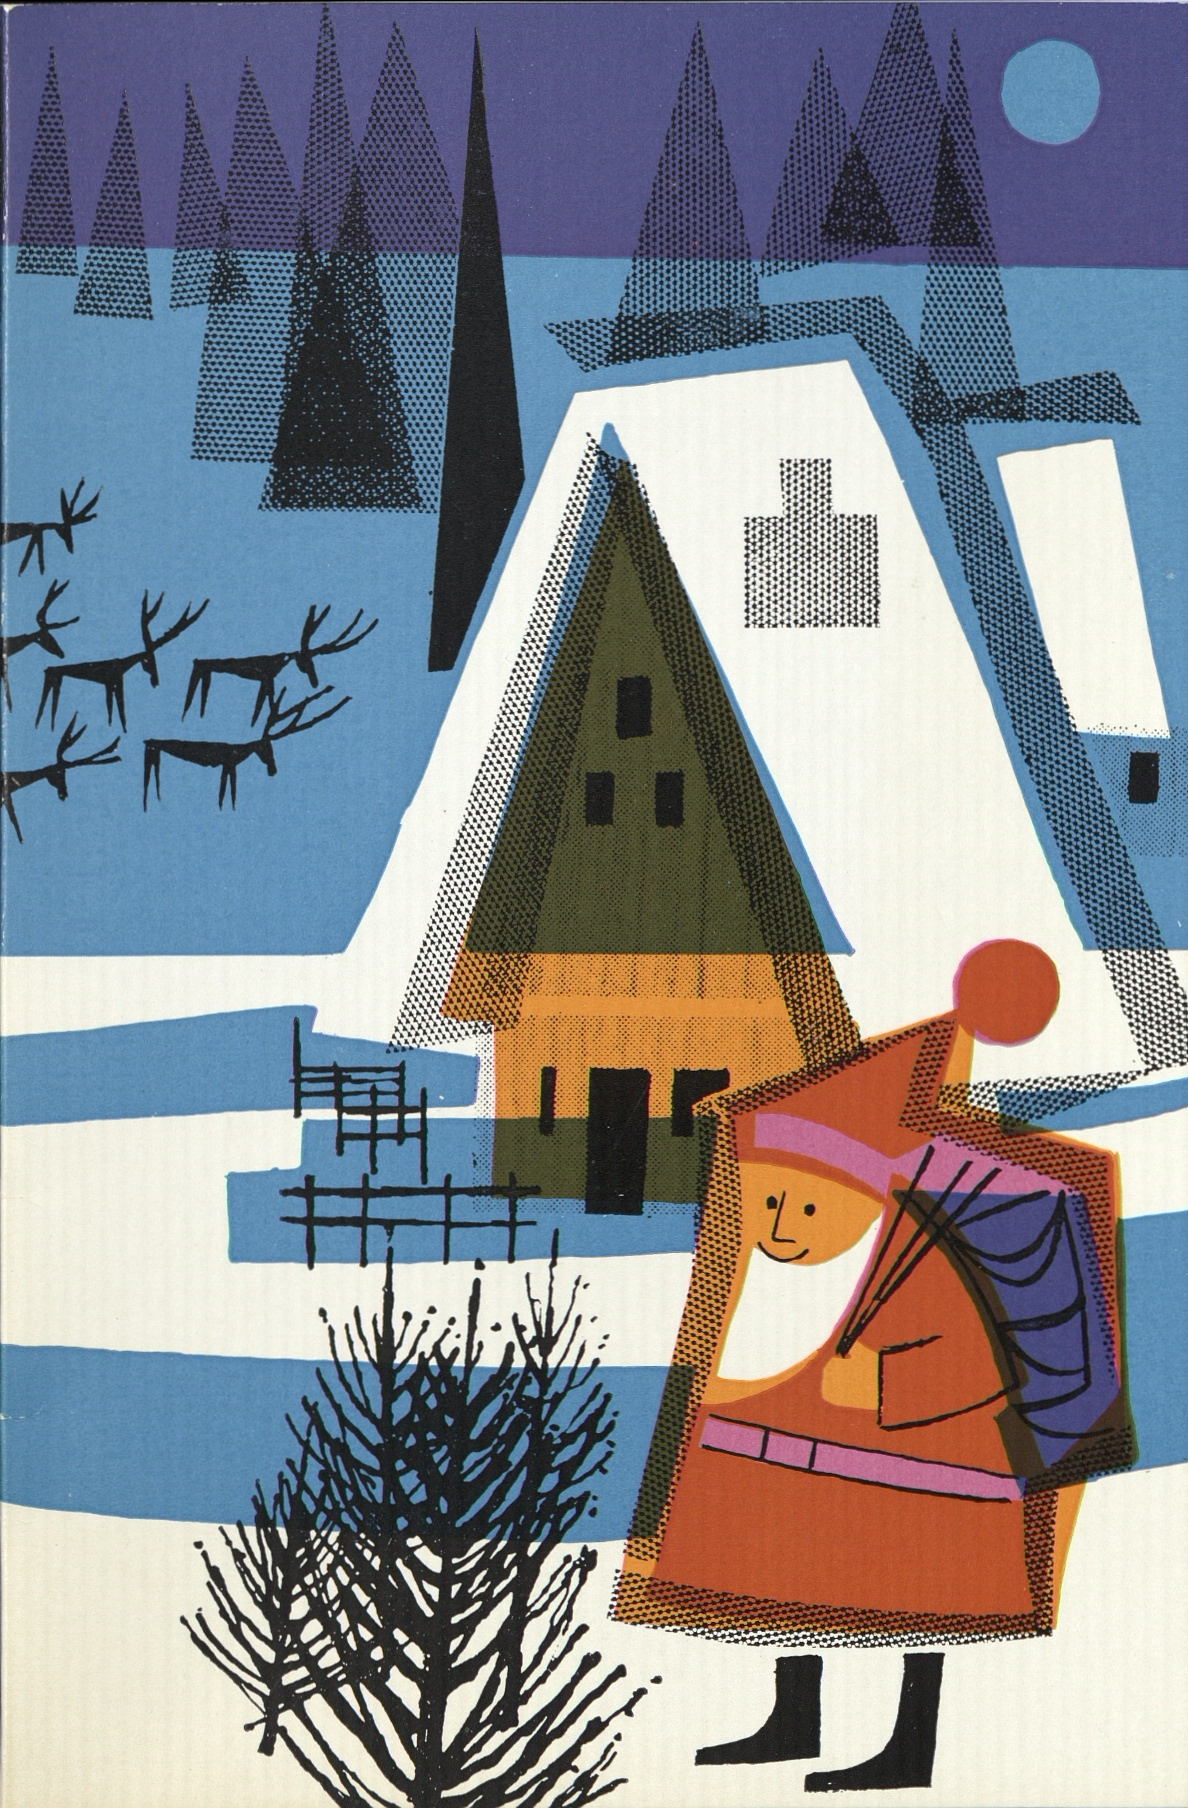 Letter from Santa card cover 1963. © Royal Mail Group Ltd, courtesy of The British Postal Museum & Archive